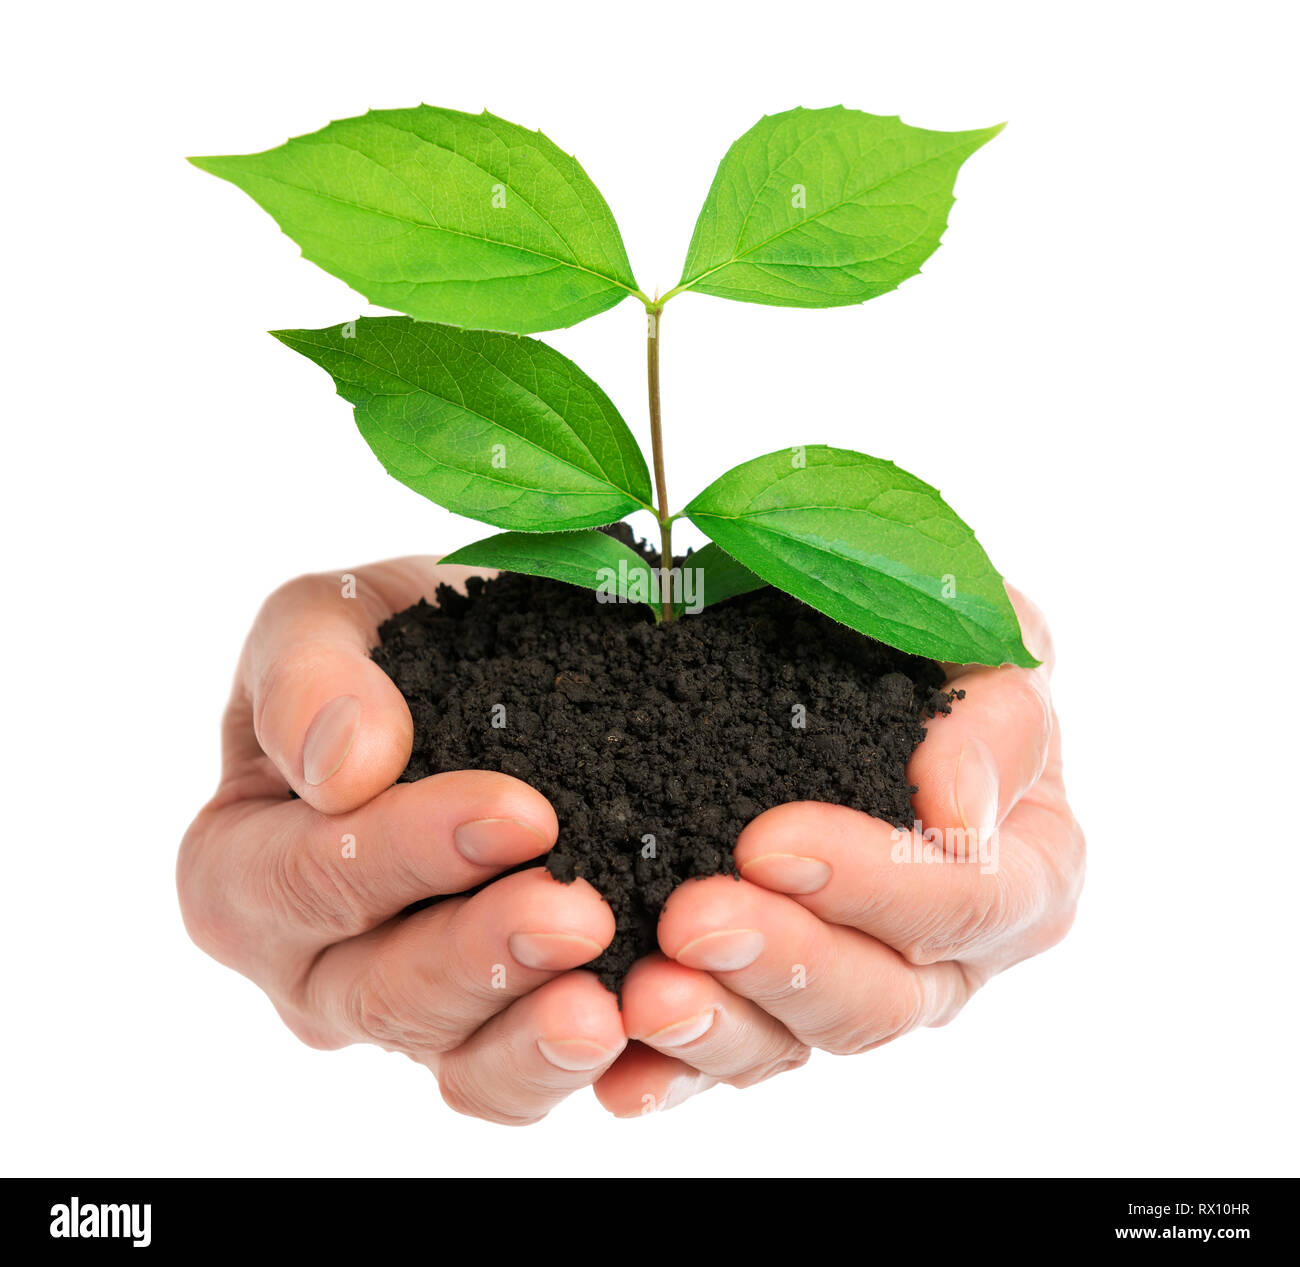 Hands holding green plant isolated - Stock Image